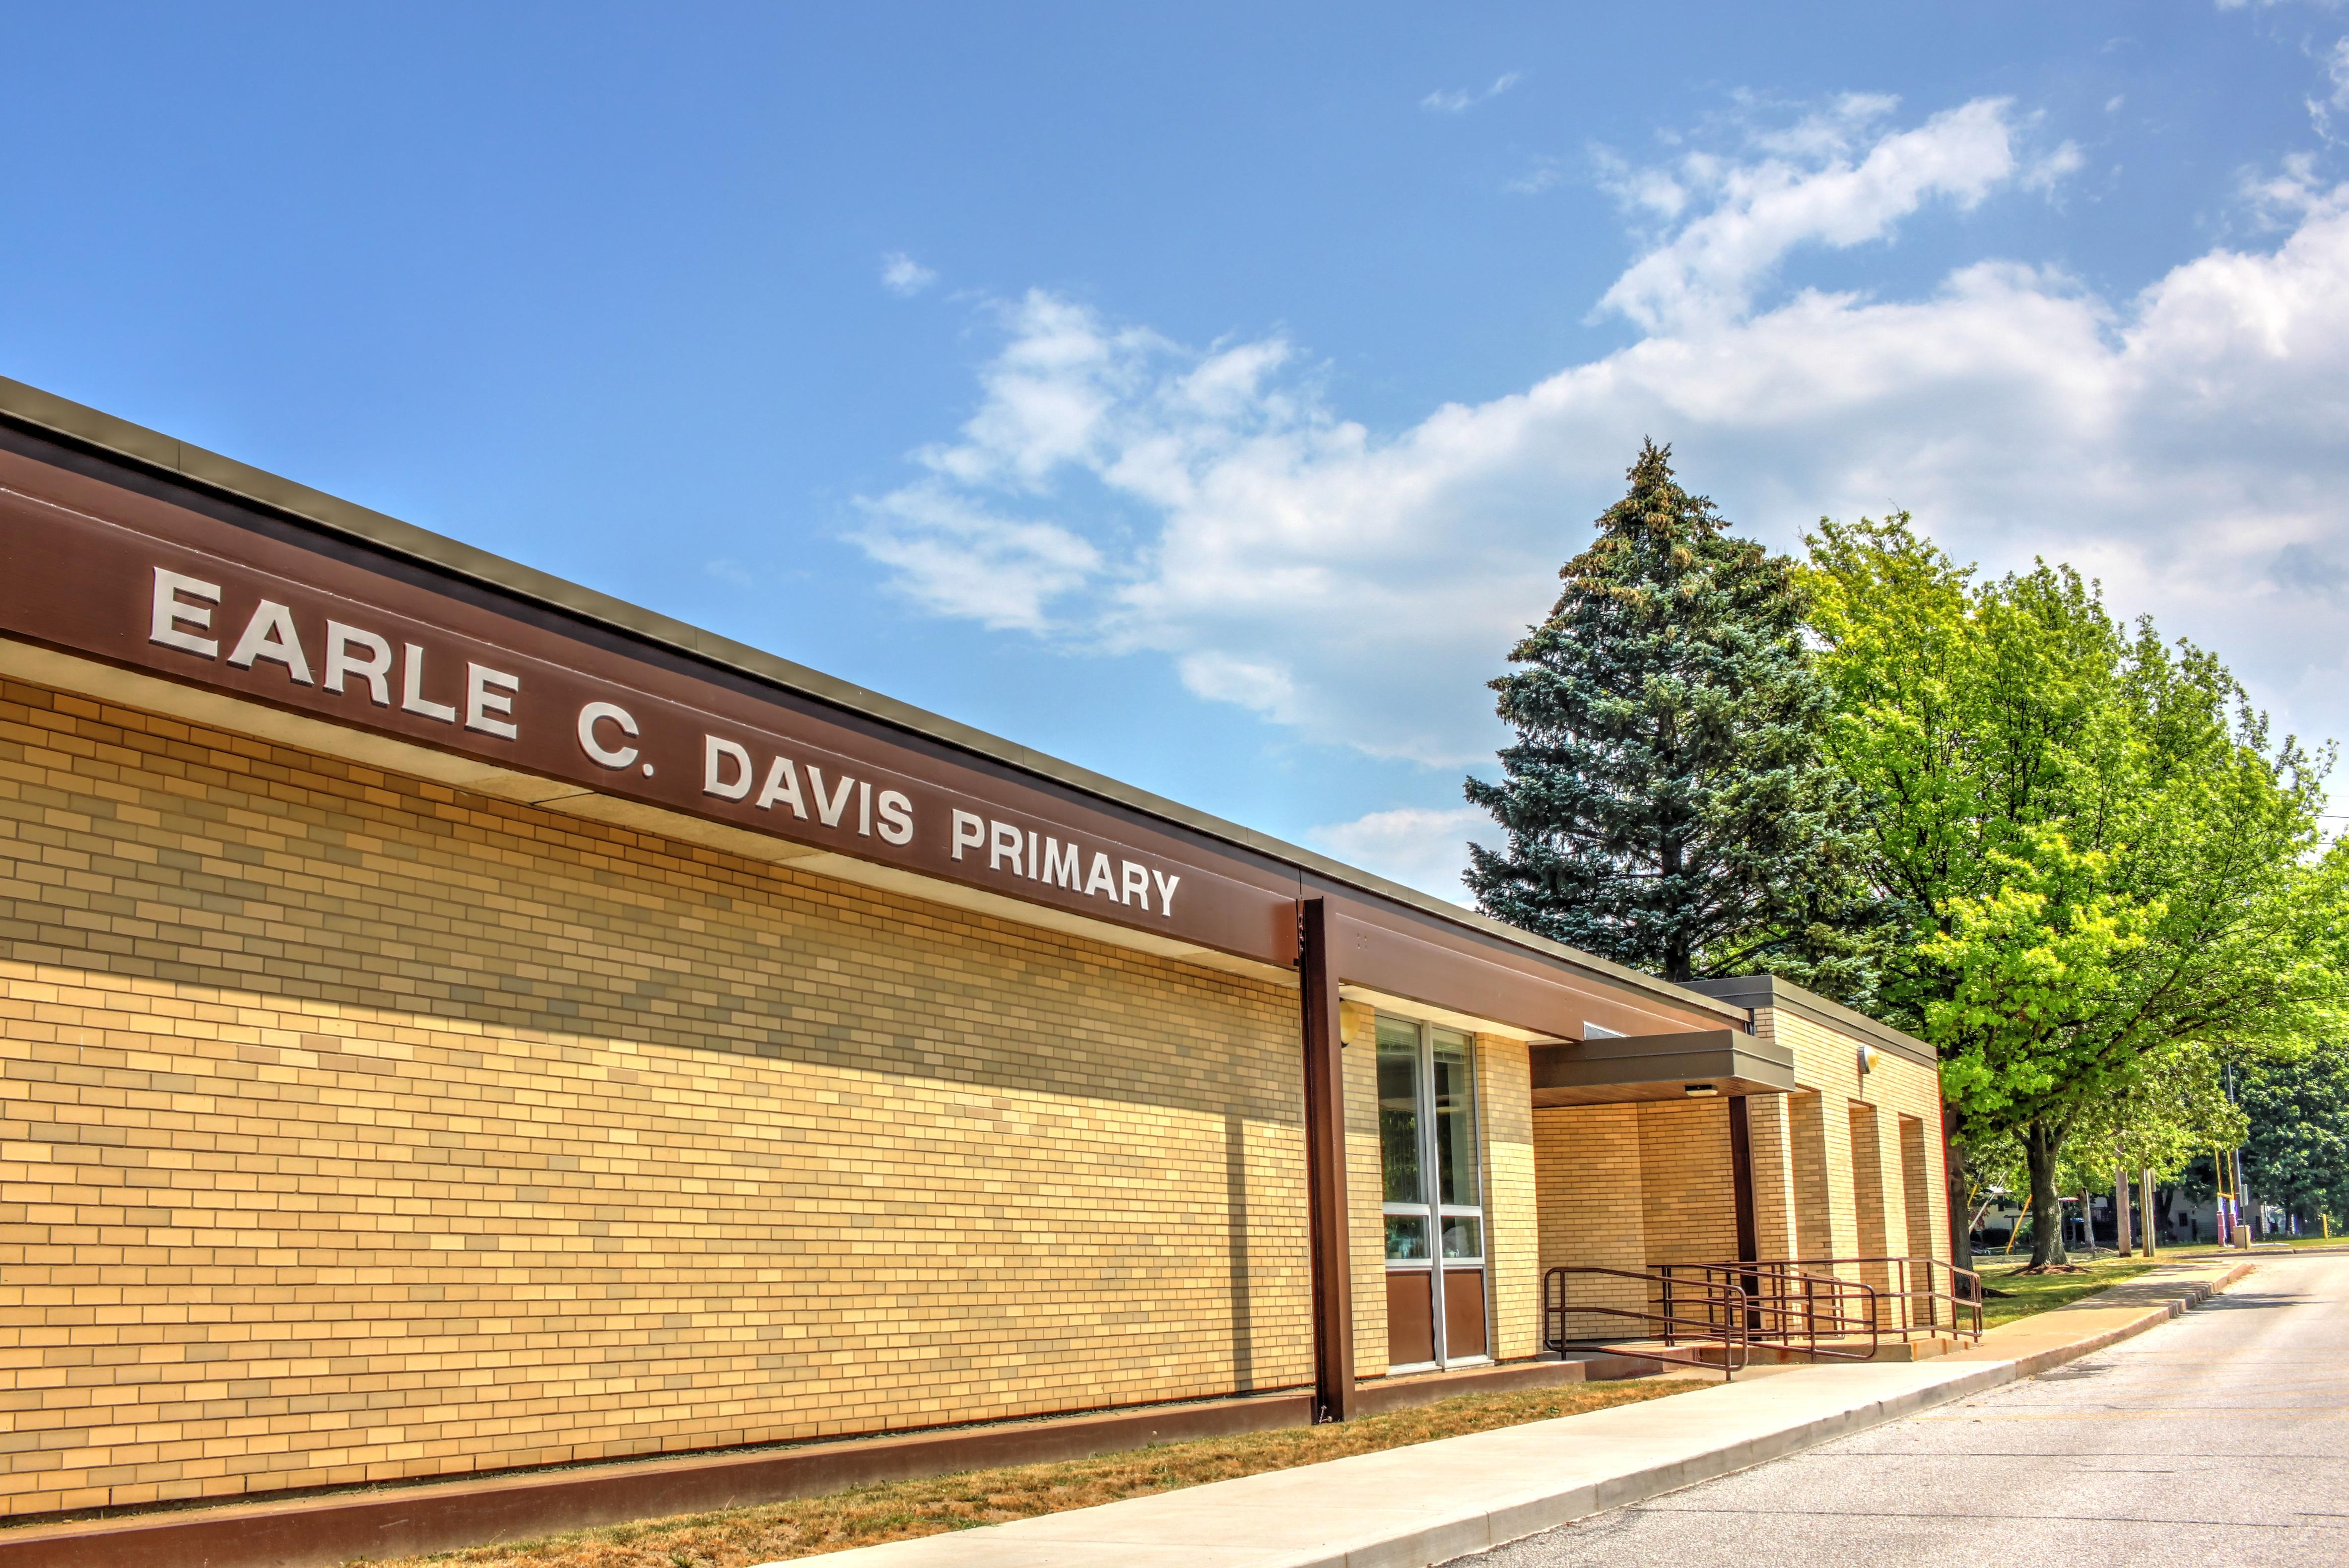 Outside view of the Earle C. Davis School